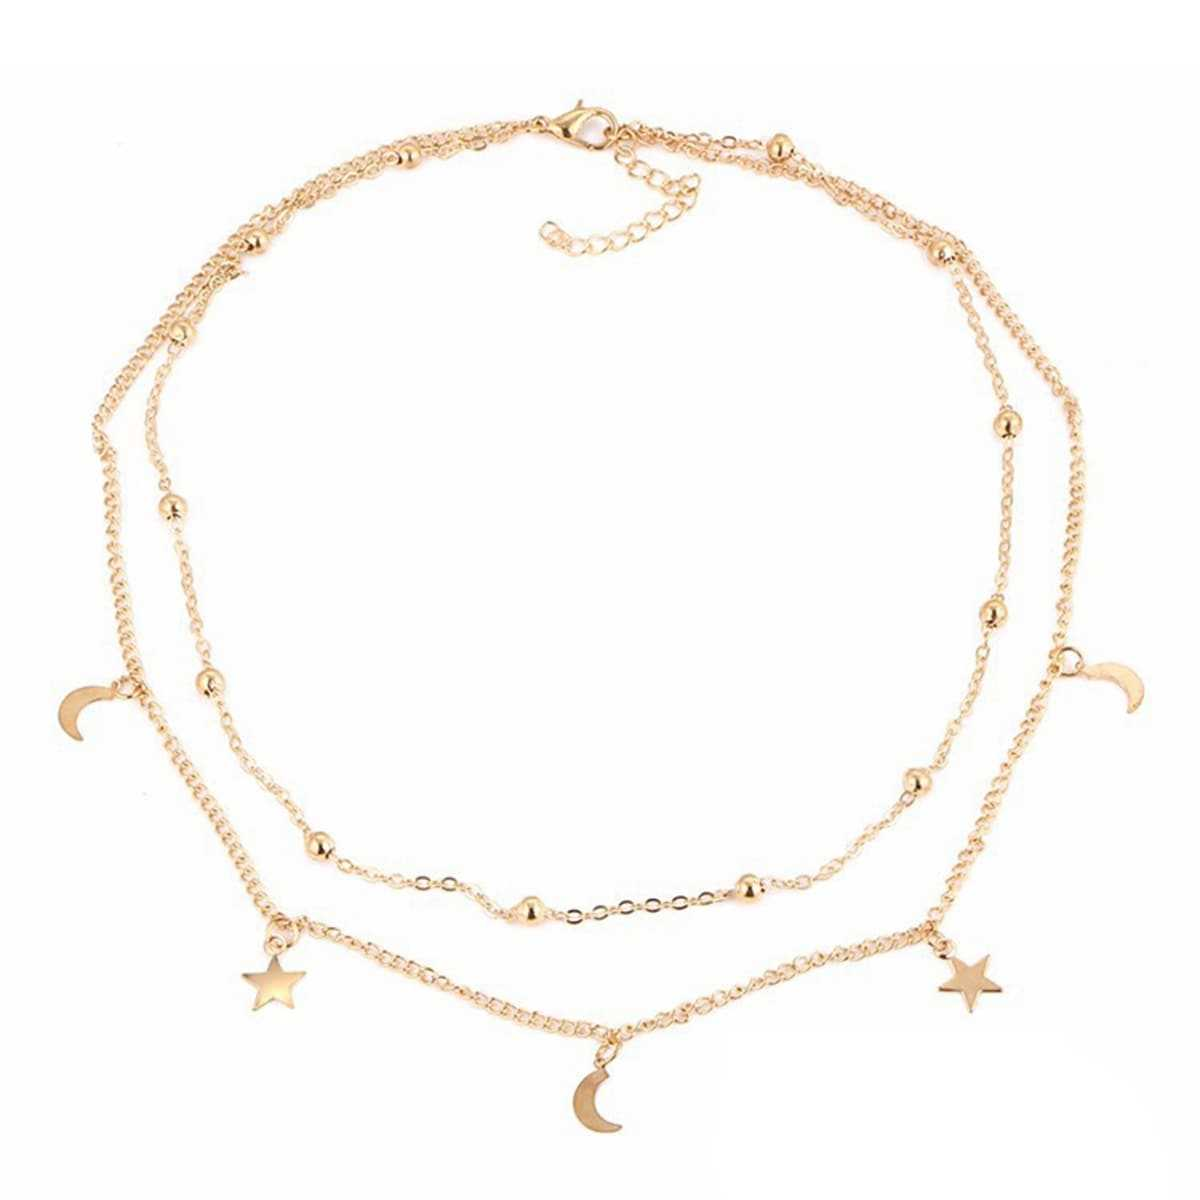 Moon & Star Decorated Layered Choker in Gold by ROMWE on GOOFASH